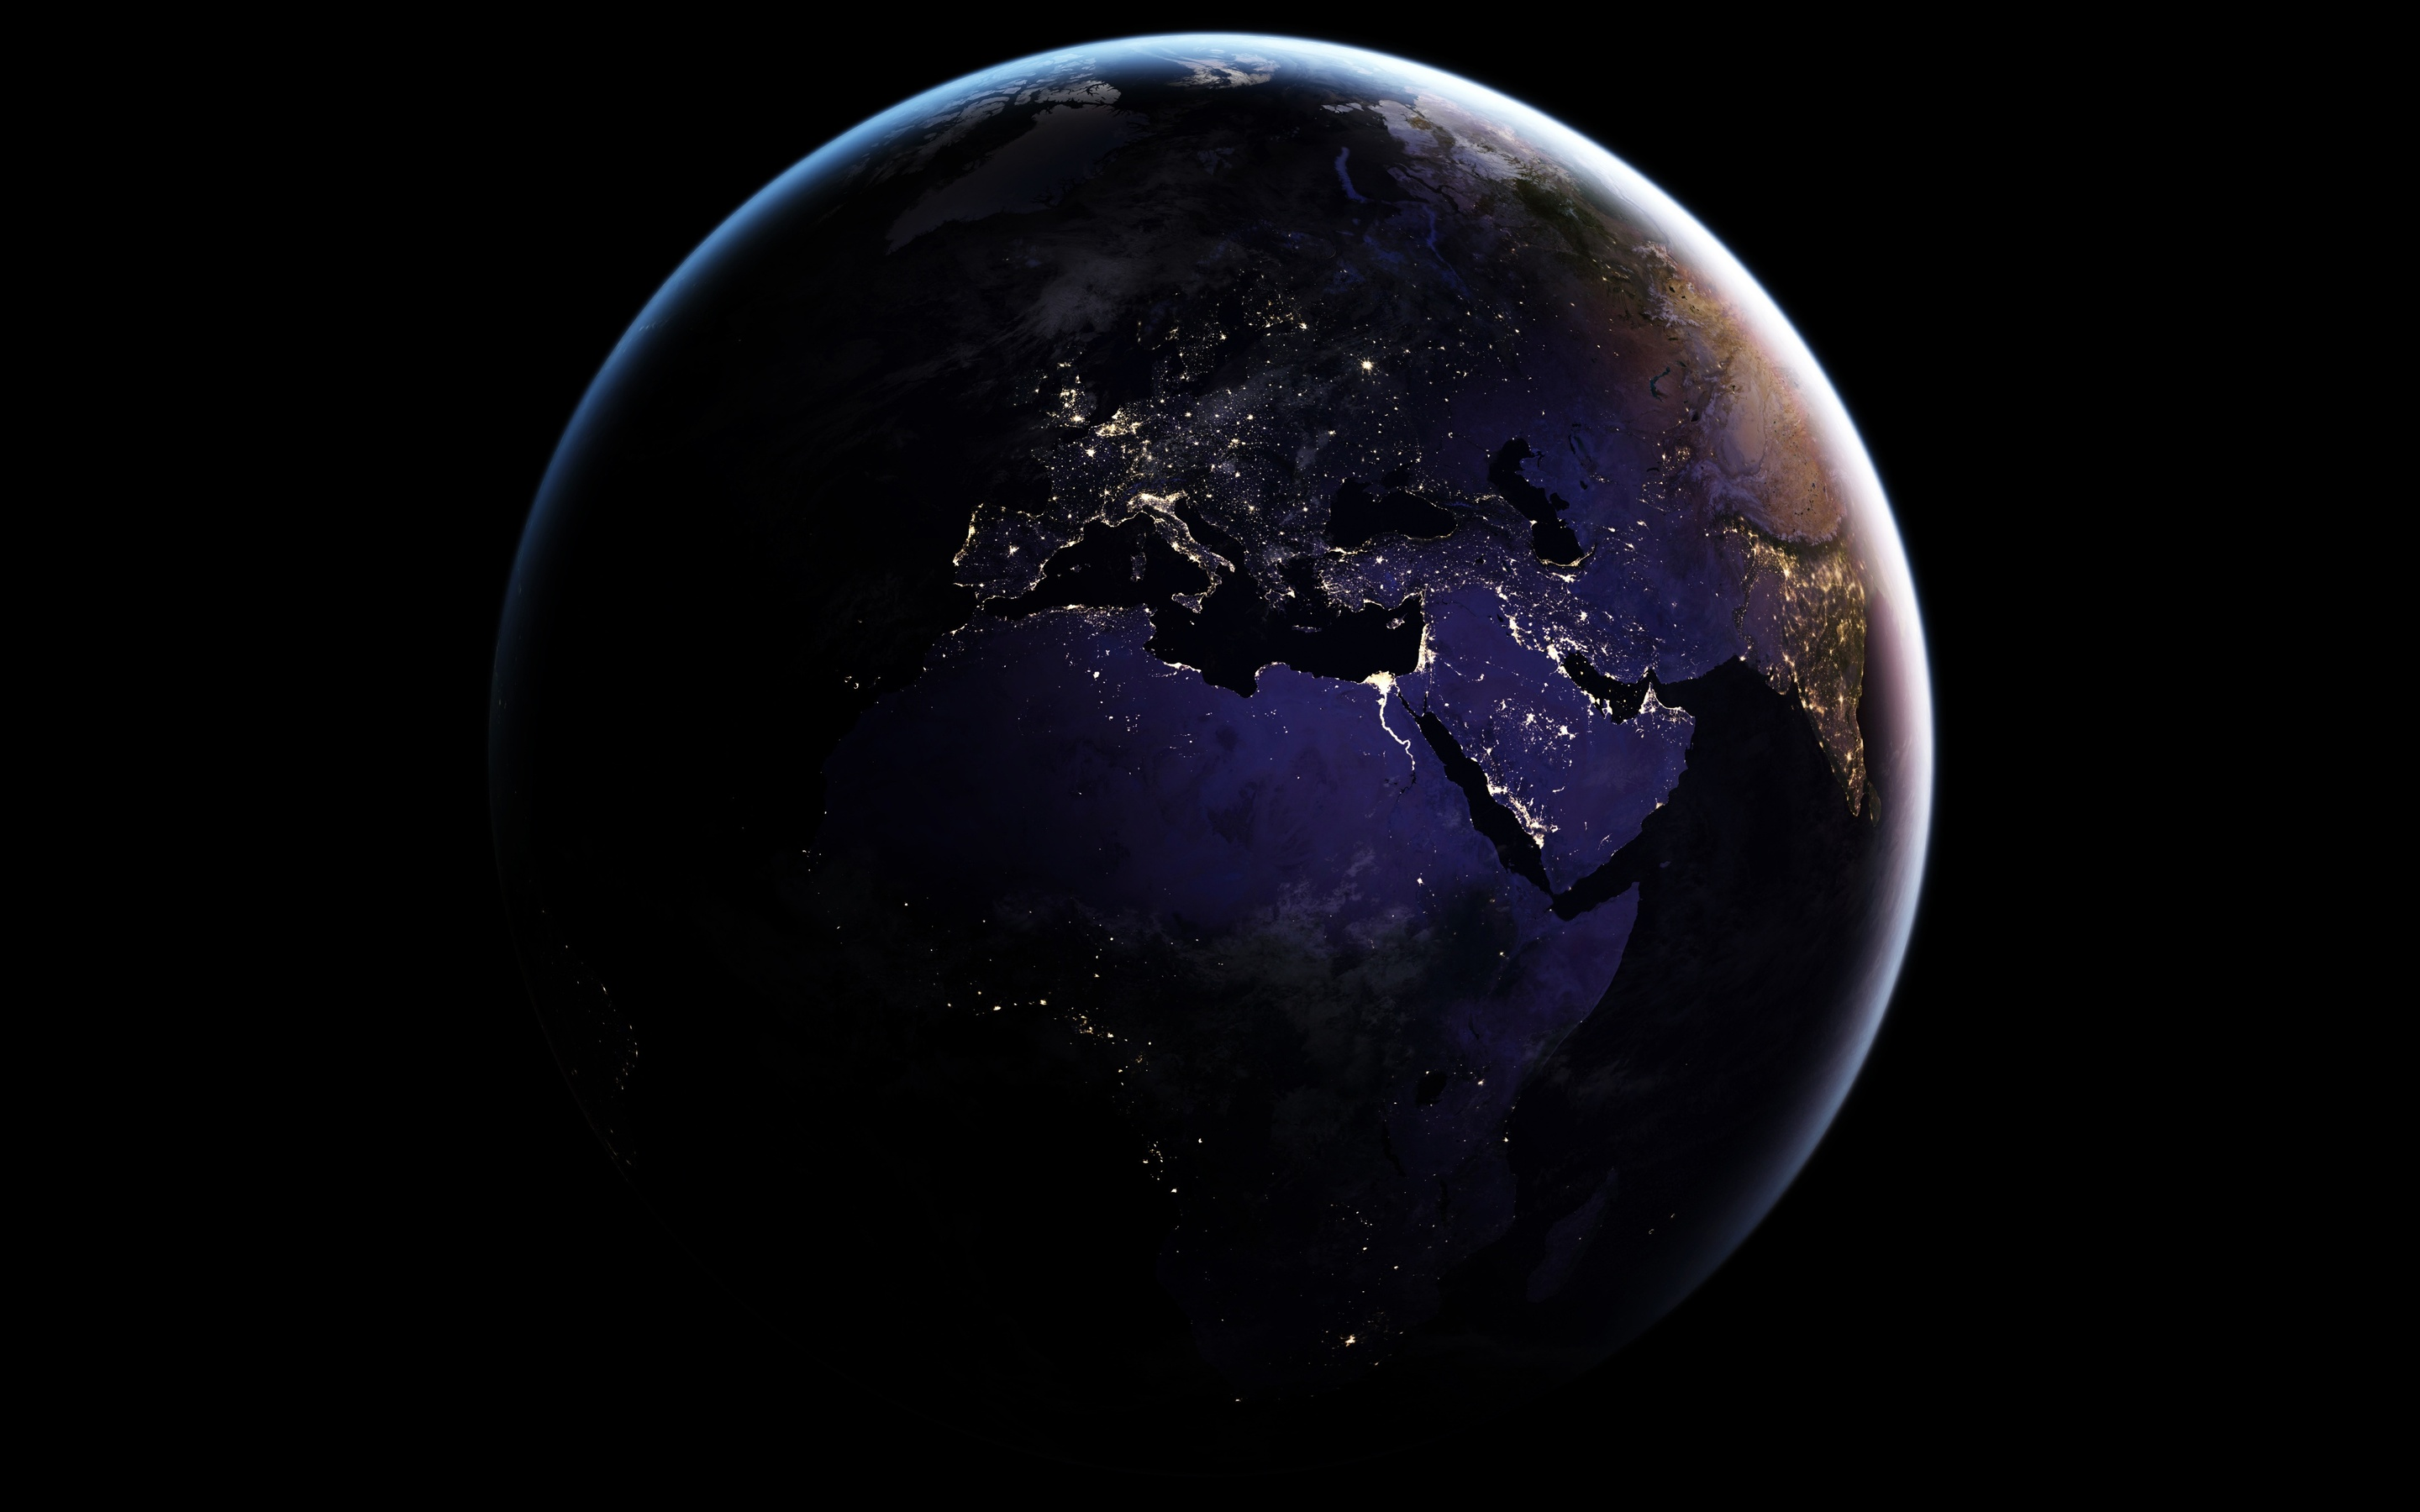 2880x1800 Earth 5k Macbook Pro Retina HD 4k Wallpapers, Images, Backgrounds, Photos and Pictures